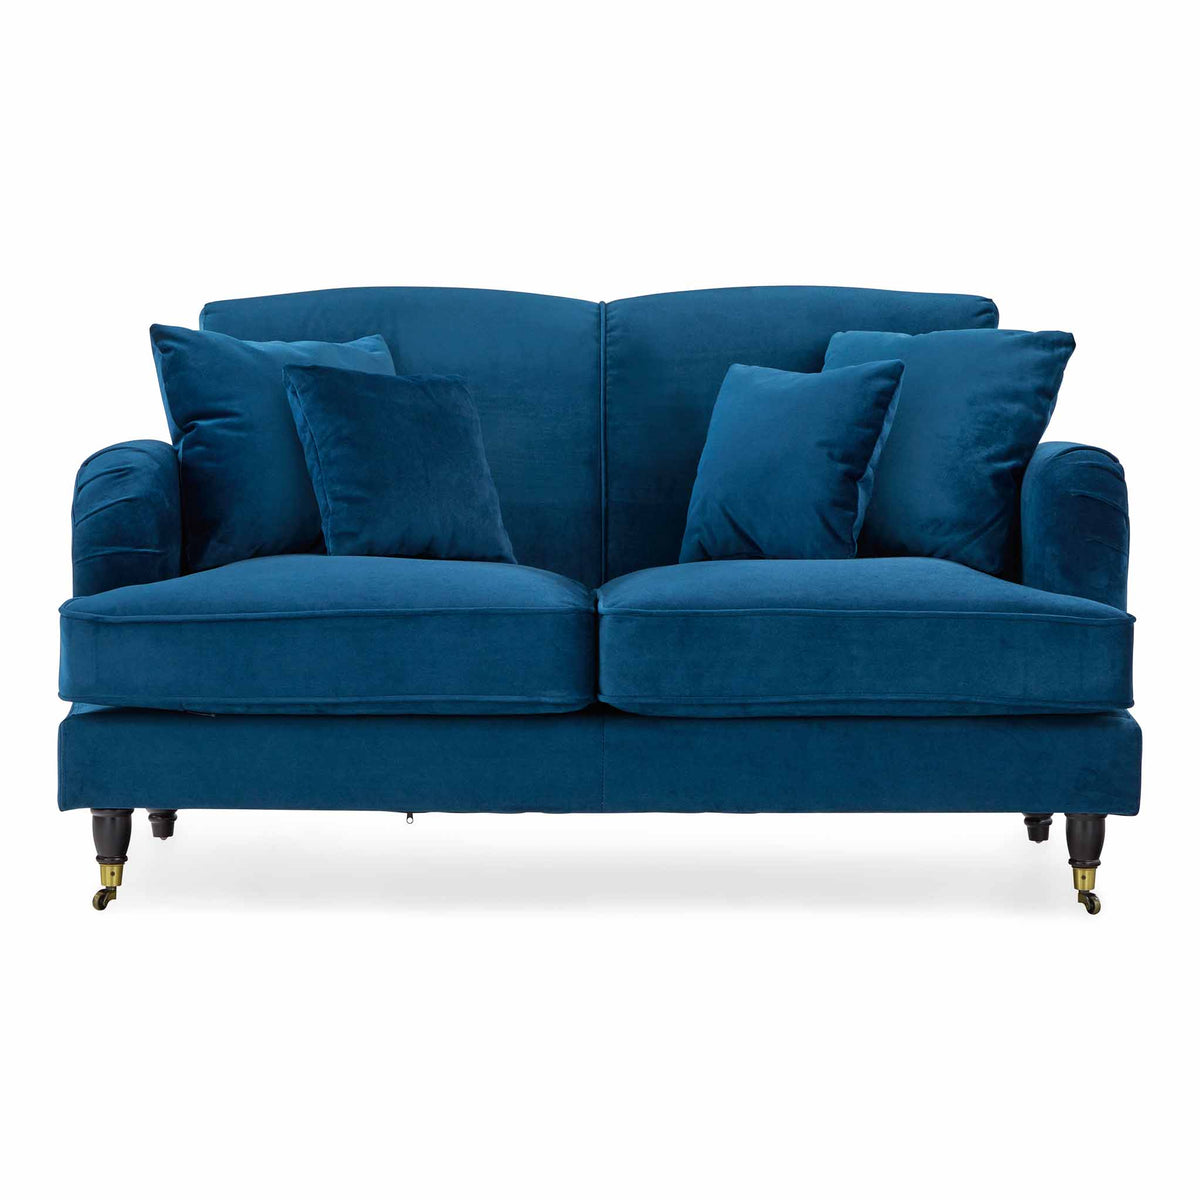 Piper Peacock 2 Seater Sofa from Roseland Furniture